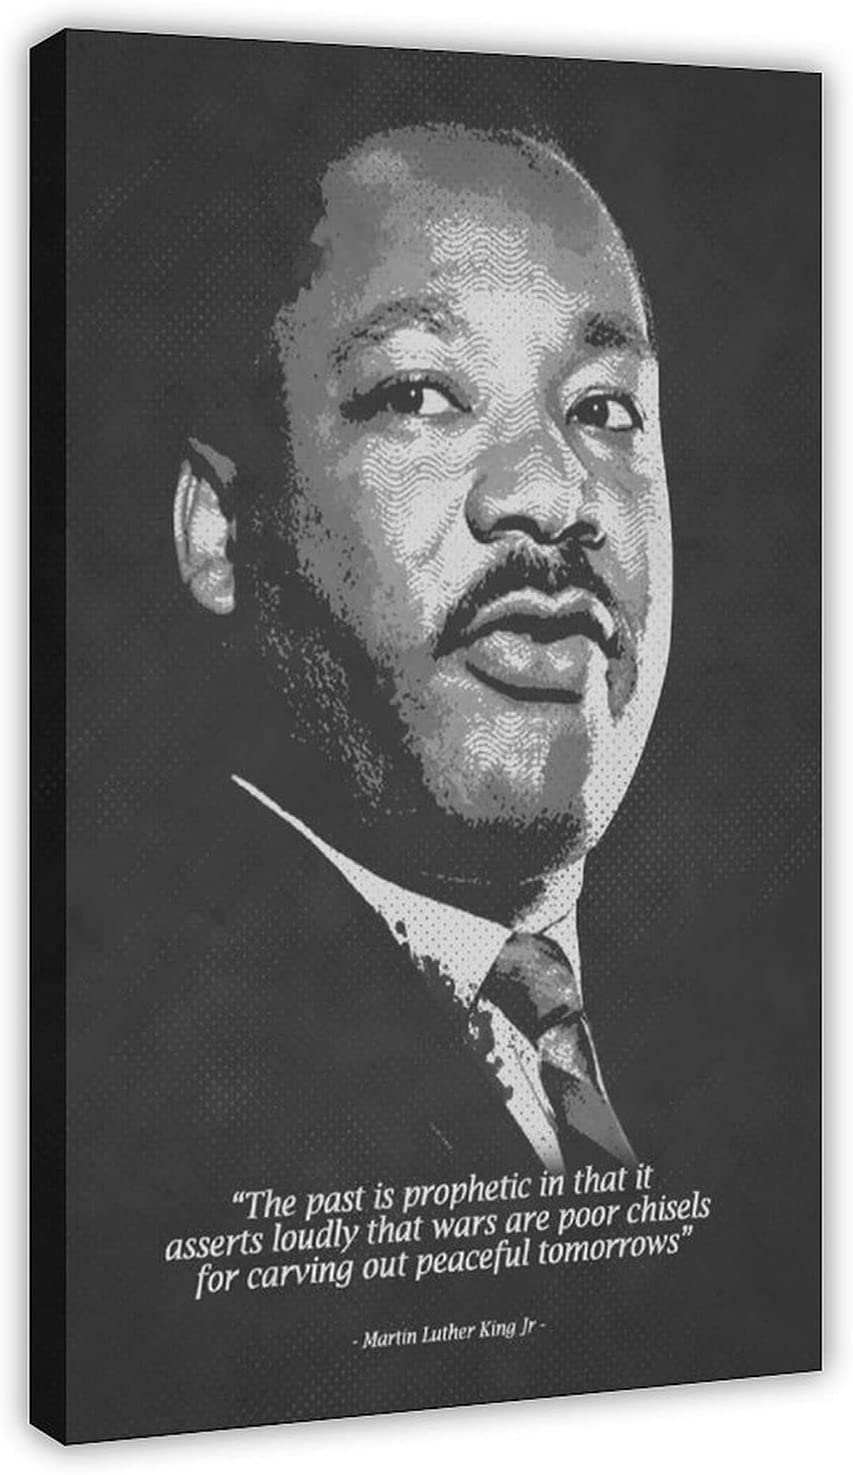 Famous Popular brand Quotes Inspirational Posters Martin Jr. King Can Luther mart 6